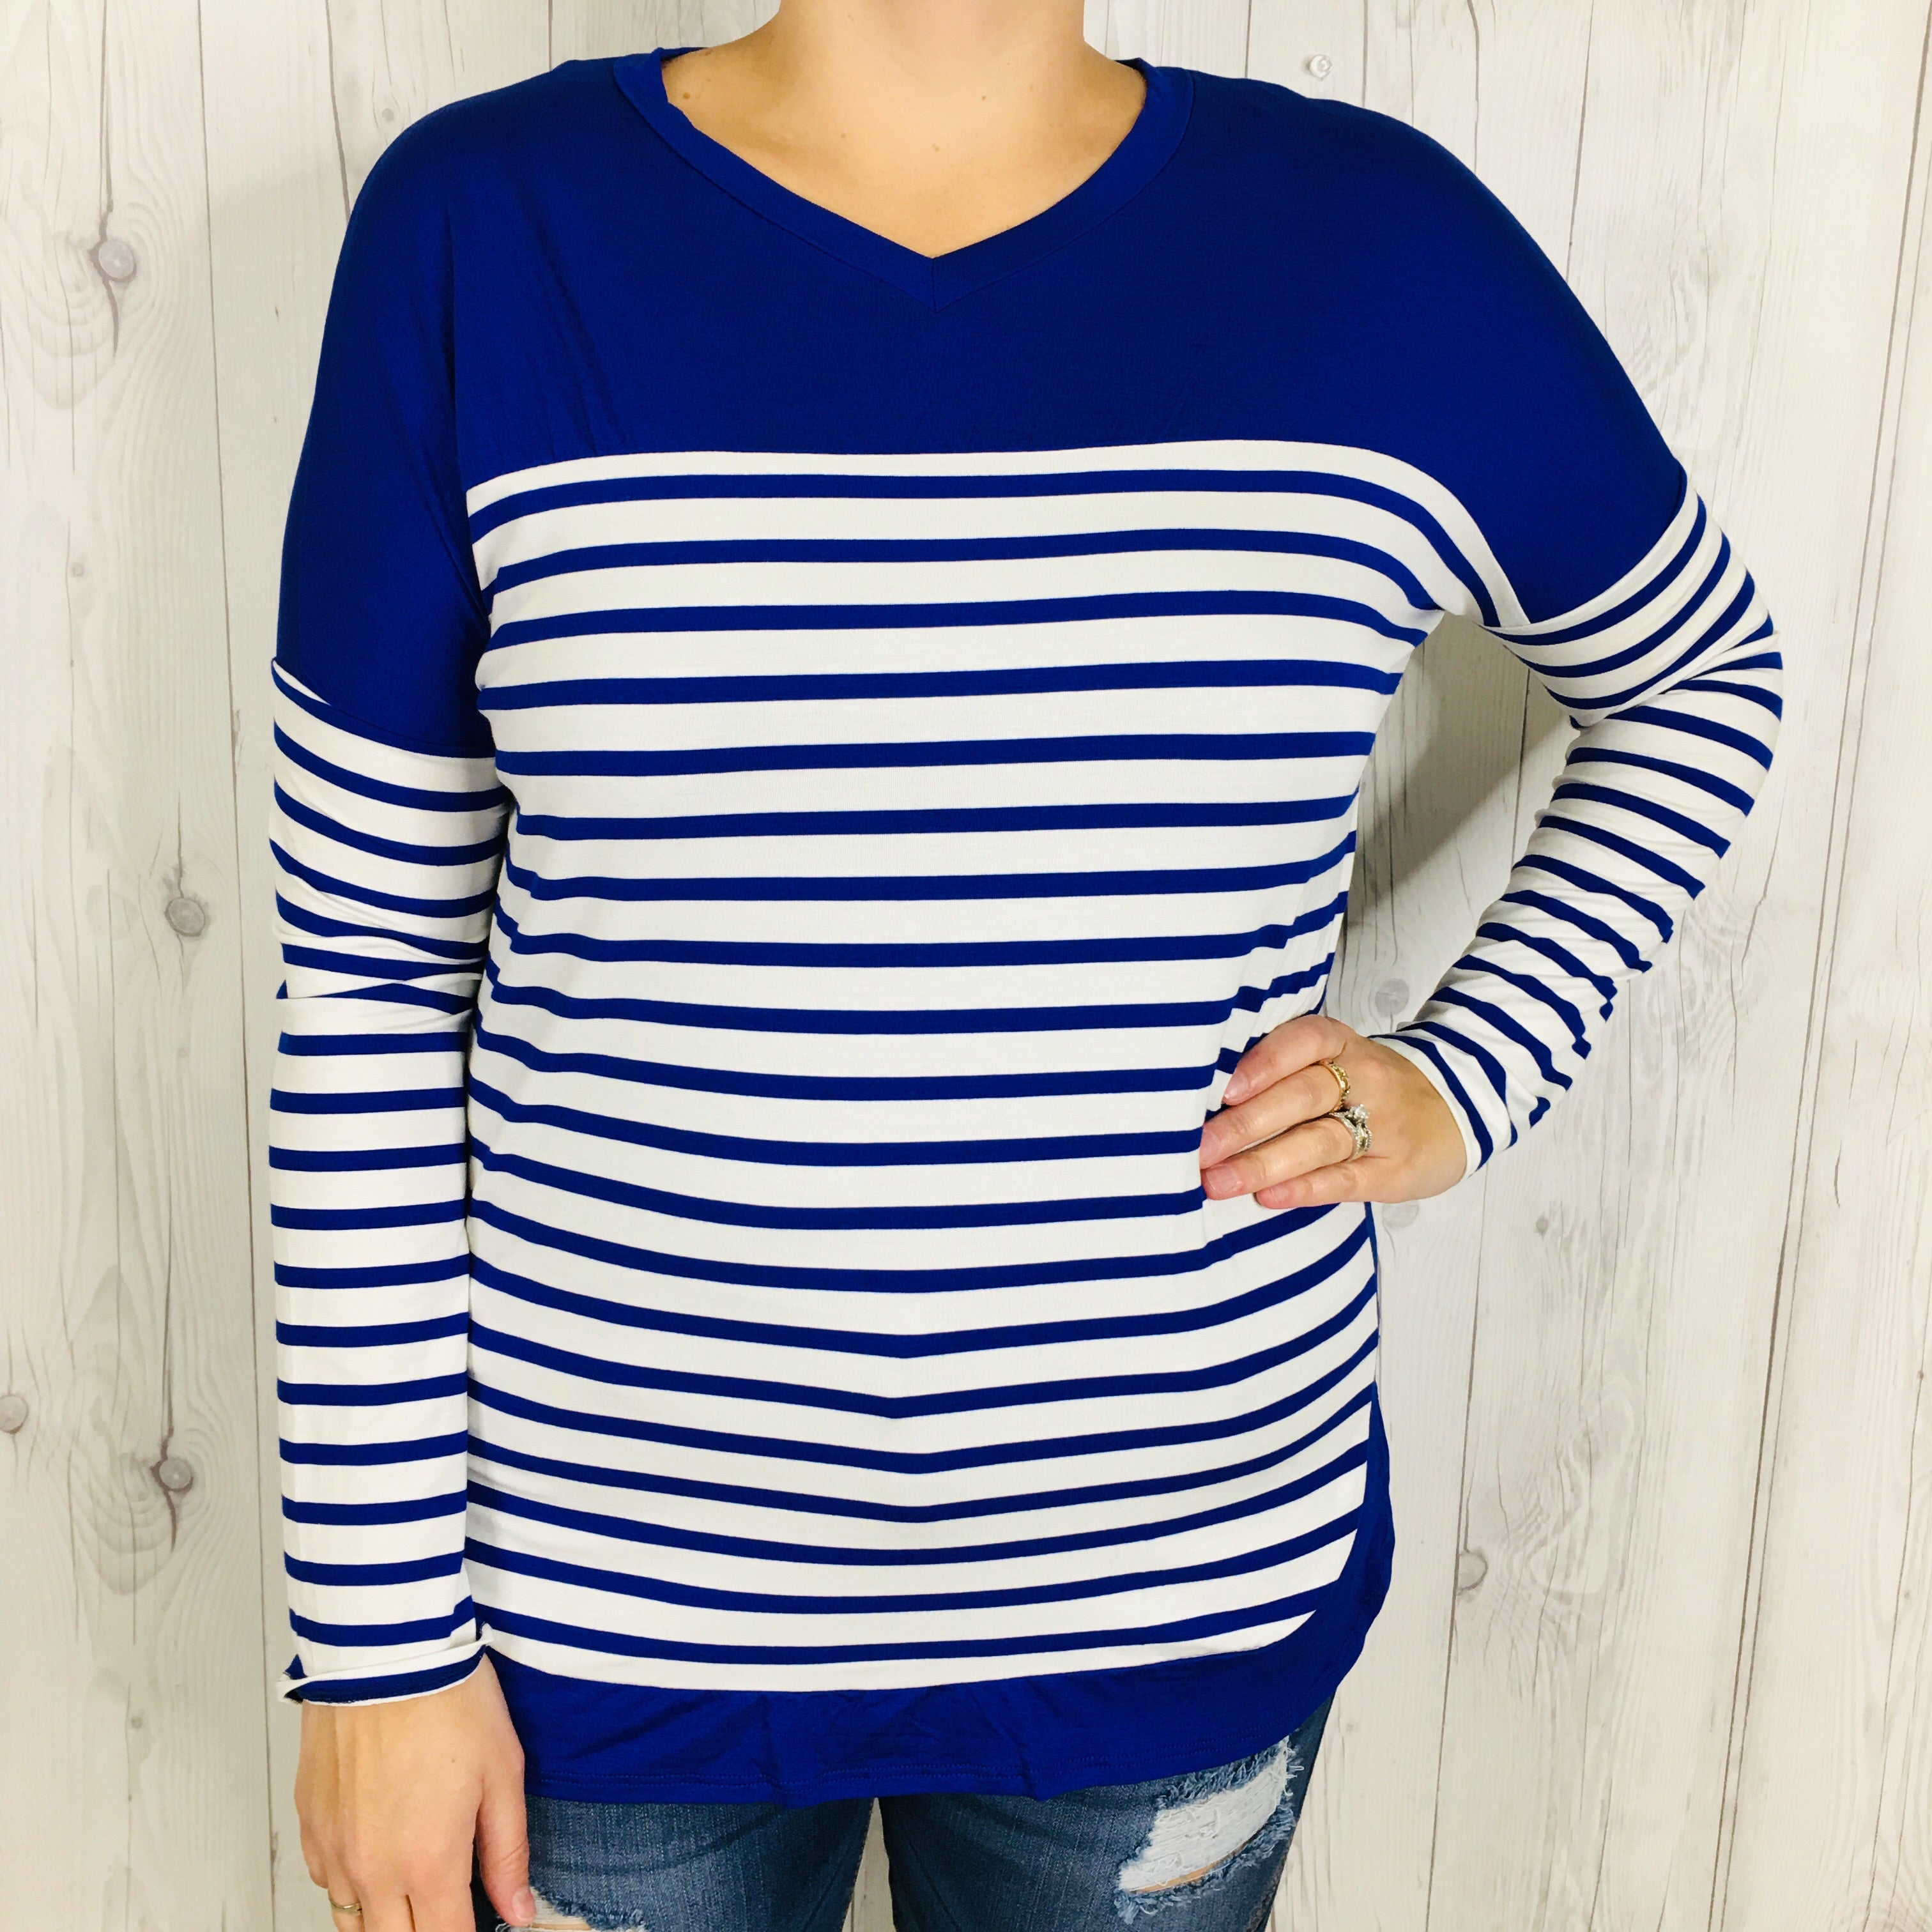 Long Sleeve White and Navy Striped Shirt